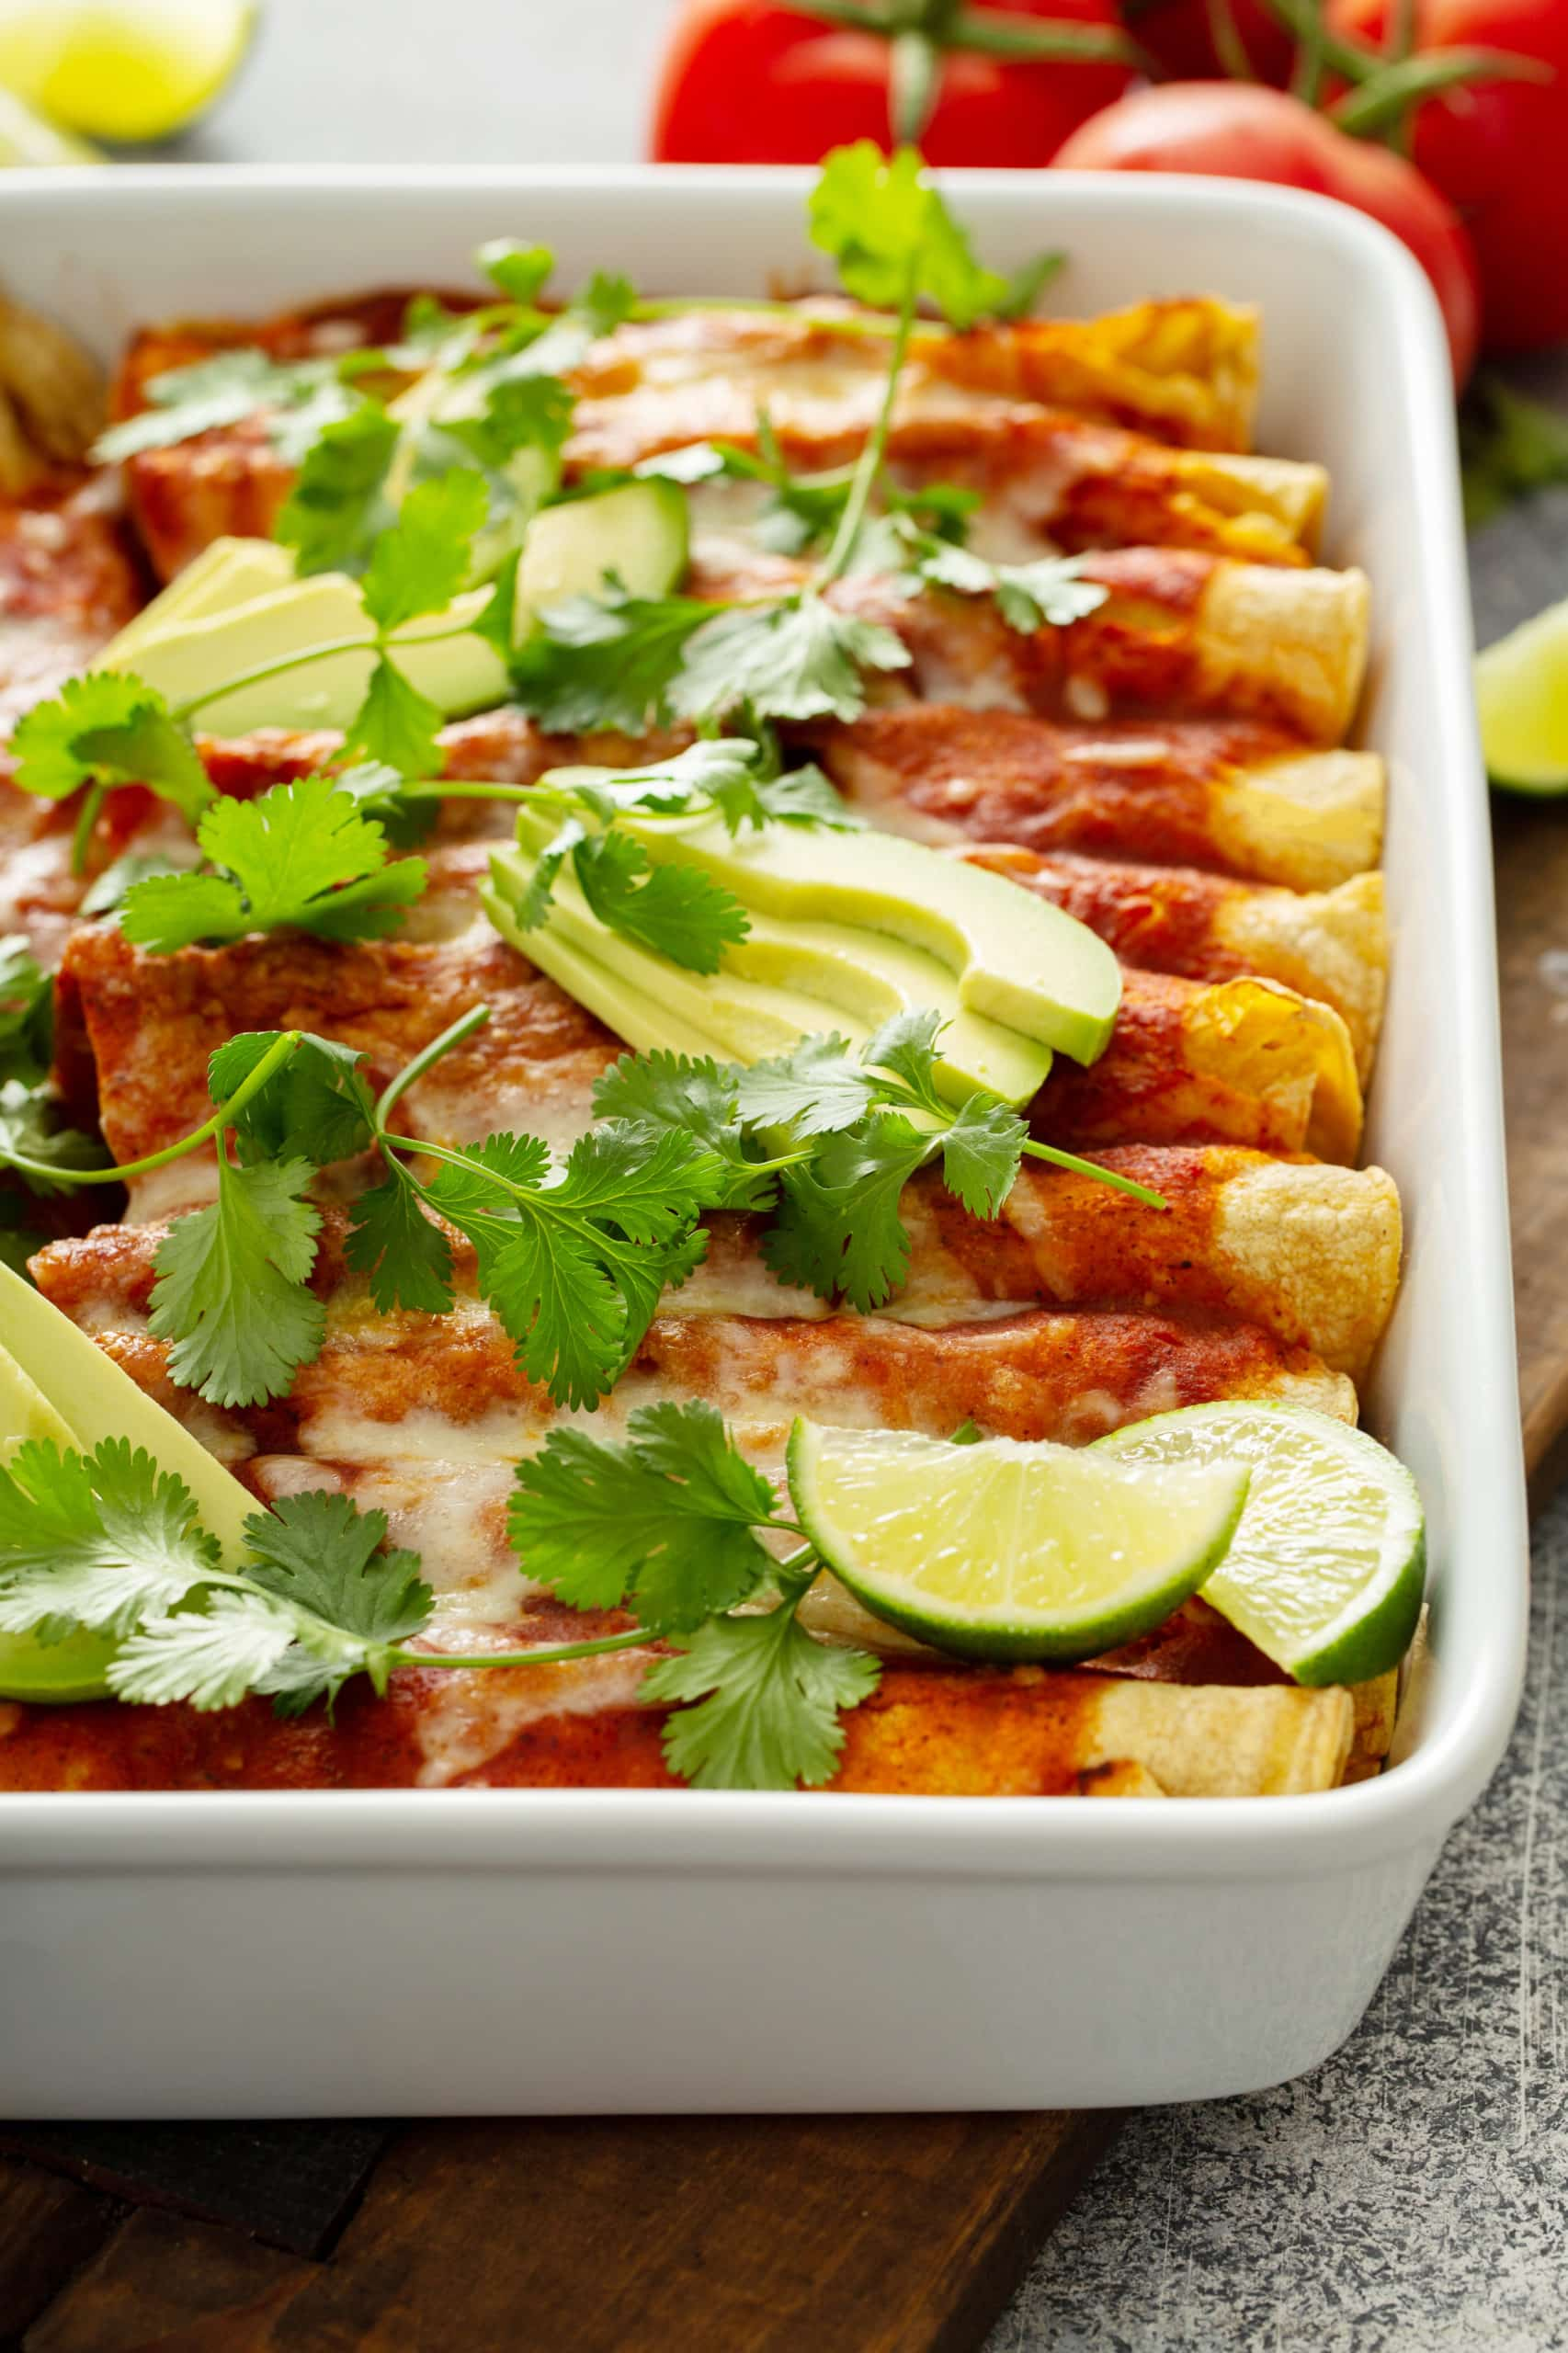 A casserole dish filled with enchiladas. They are topped with red sauce, sliced avocados, cilantro leaves and a few lime wedges in the corners.